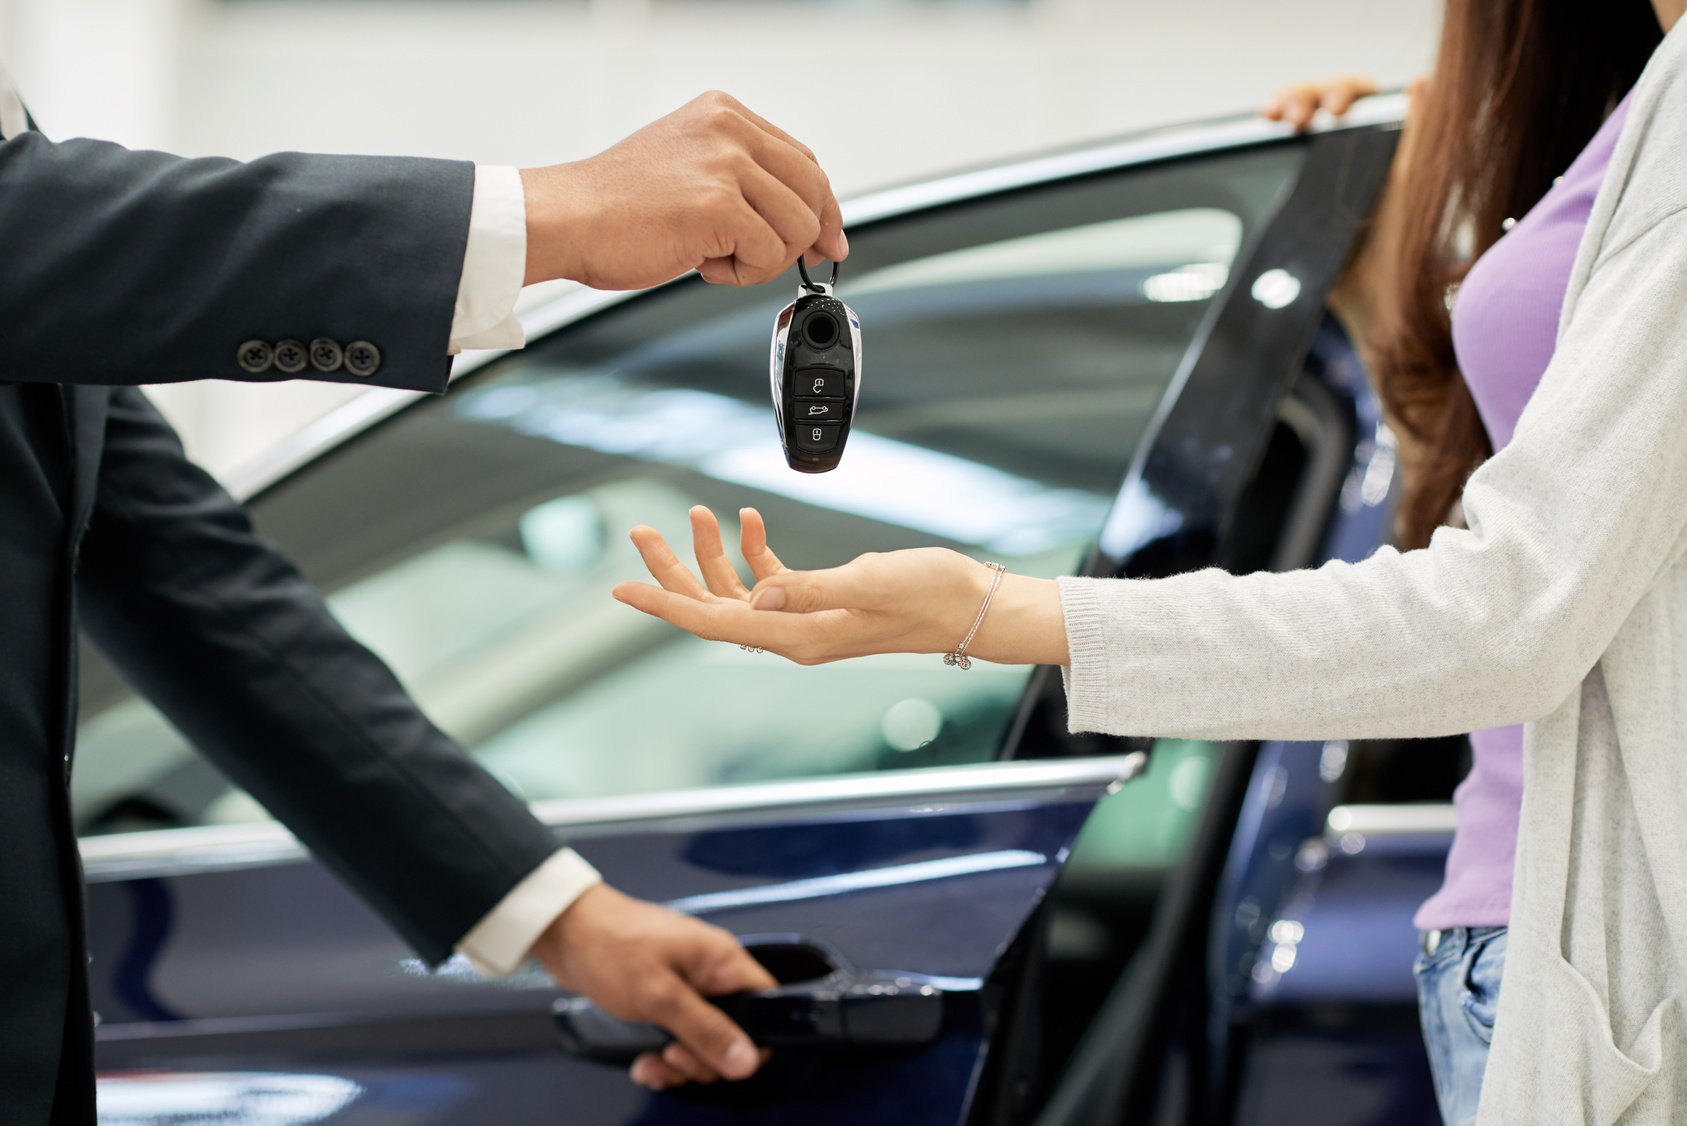 negotiation skills buying a car - the negotiation details a funny exchange between an online, internet-researched customer and an old-school car salesmanme written by joe.